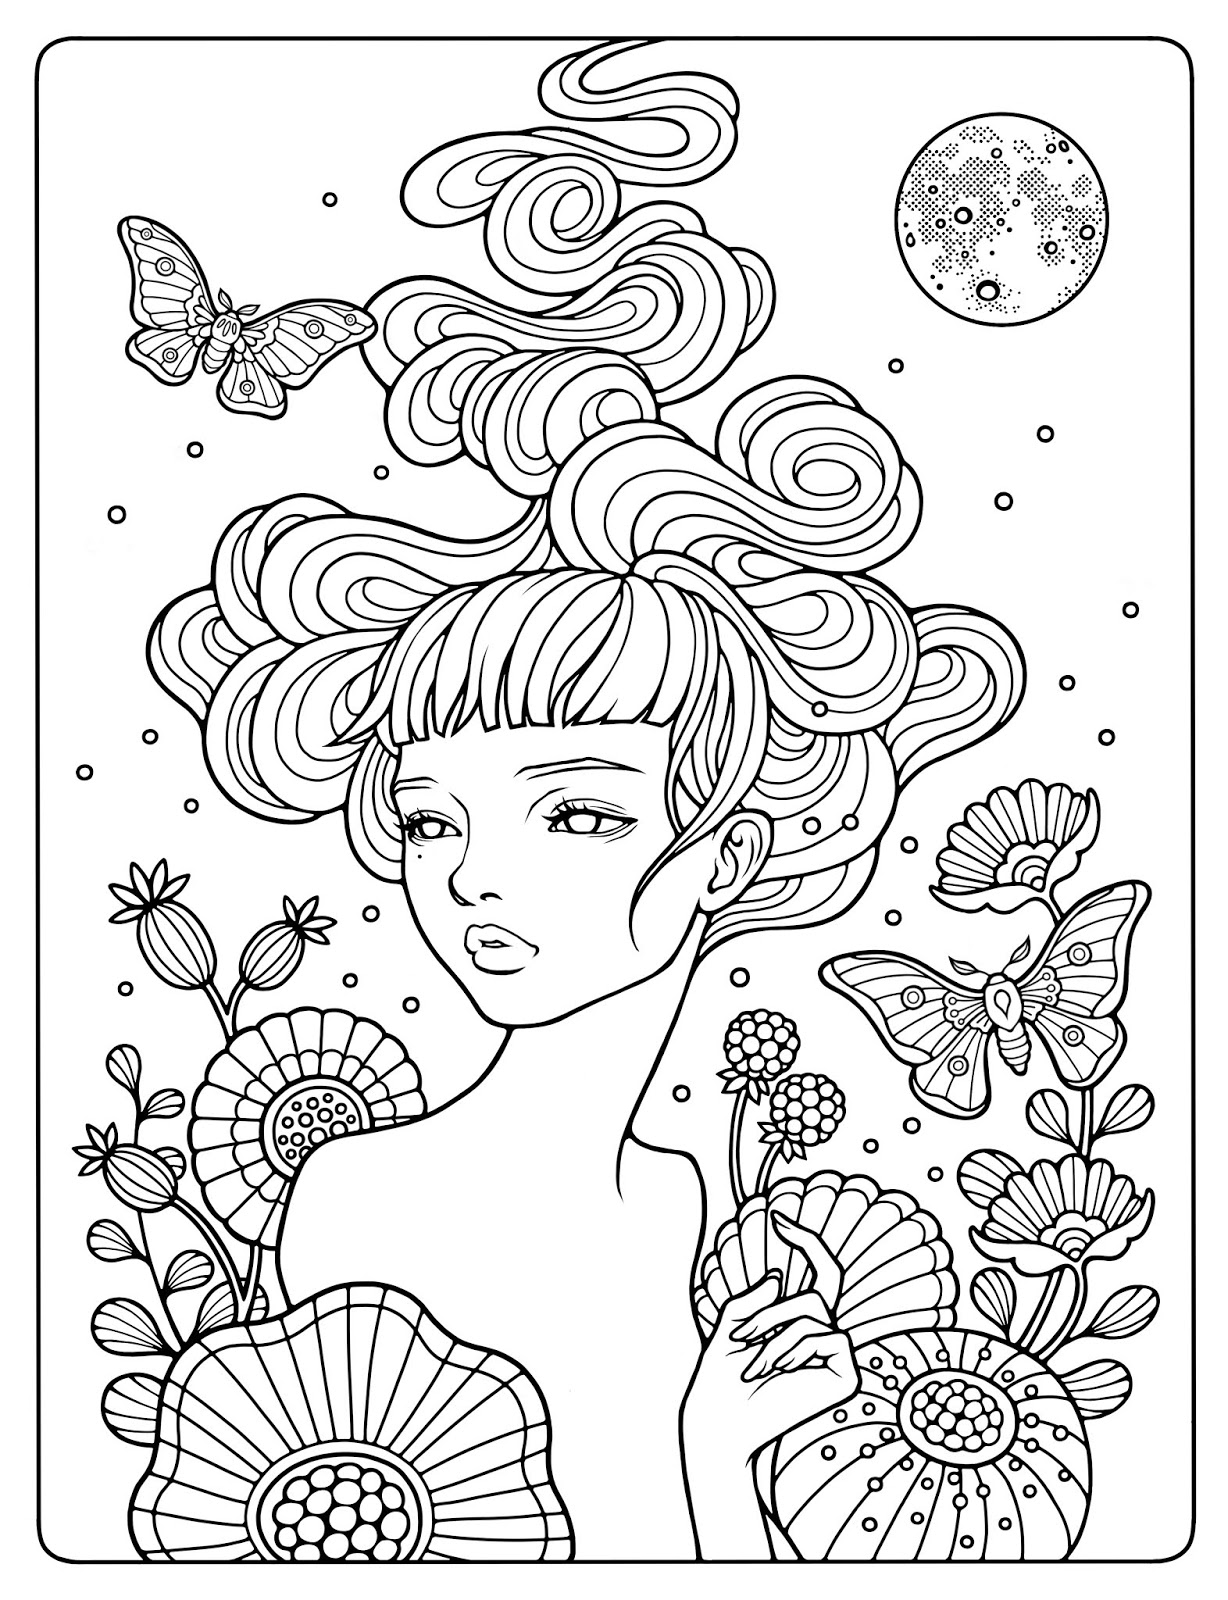 Coloring Pages for Adults - You're Awfully Pretty for an Anteater ... | 1600x1228